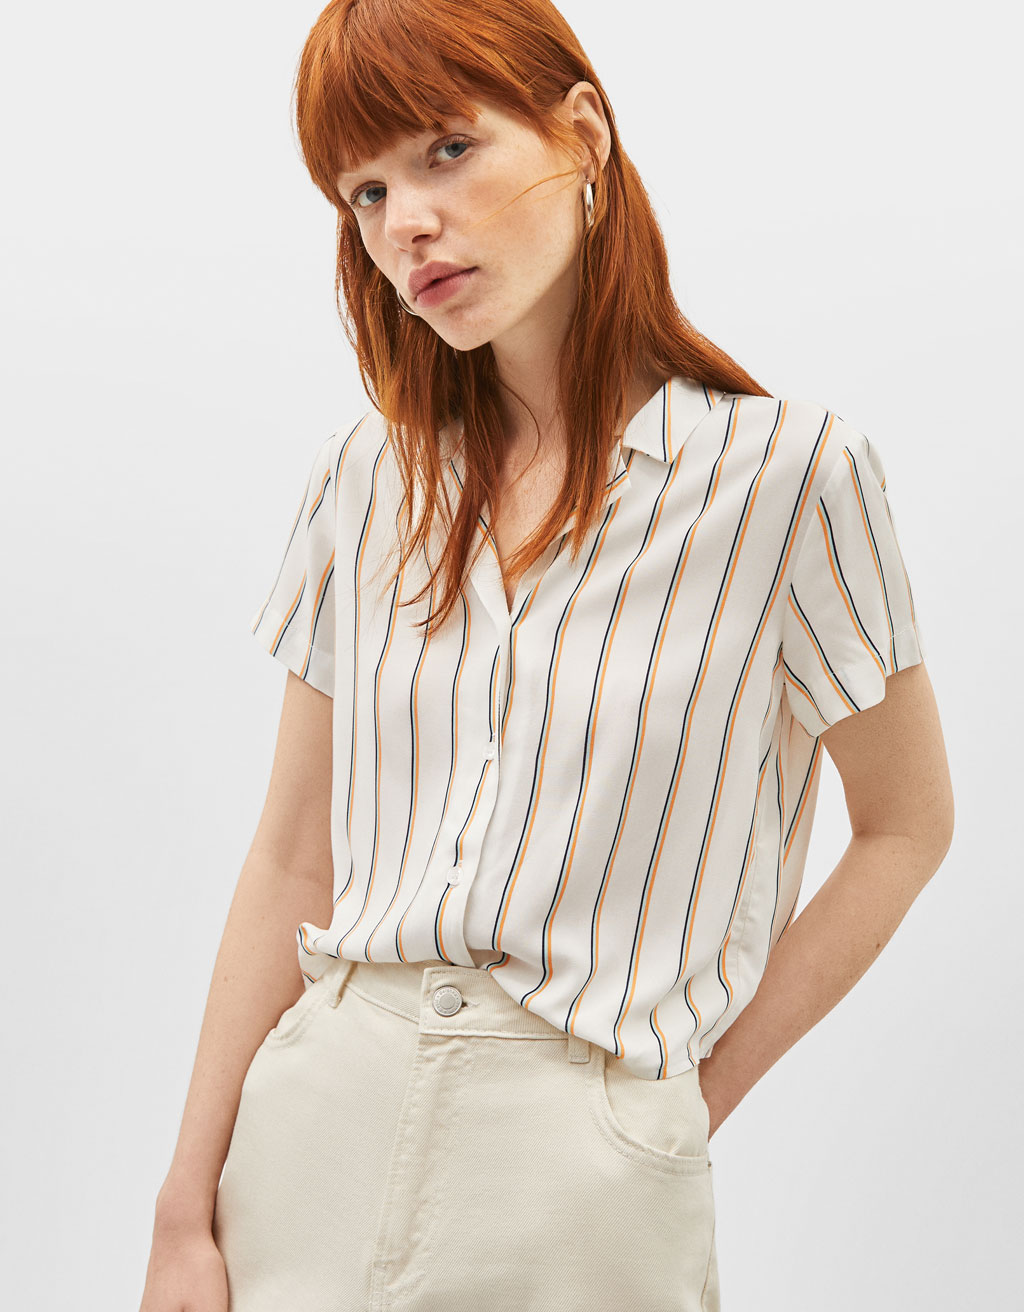 Knotted shirt with short sleeves